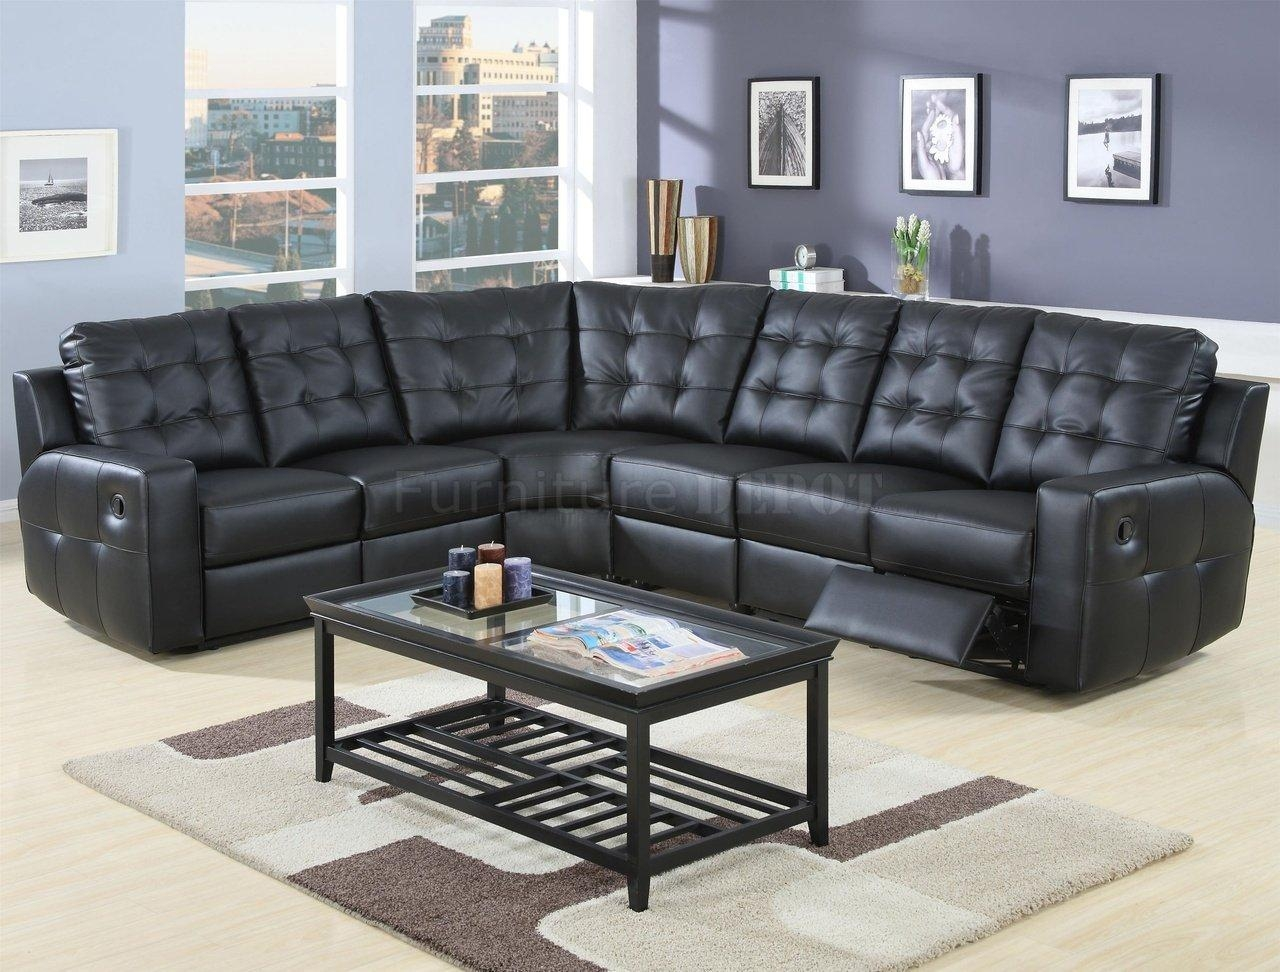 Furniture: Jedd Fabric Reclining Sectional Sofa | Sectional In Jedd Fabric Reclining Sectional Sofa (Image 10 of 20)